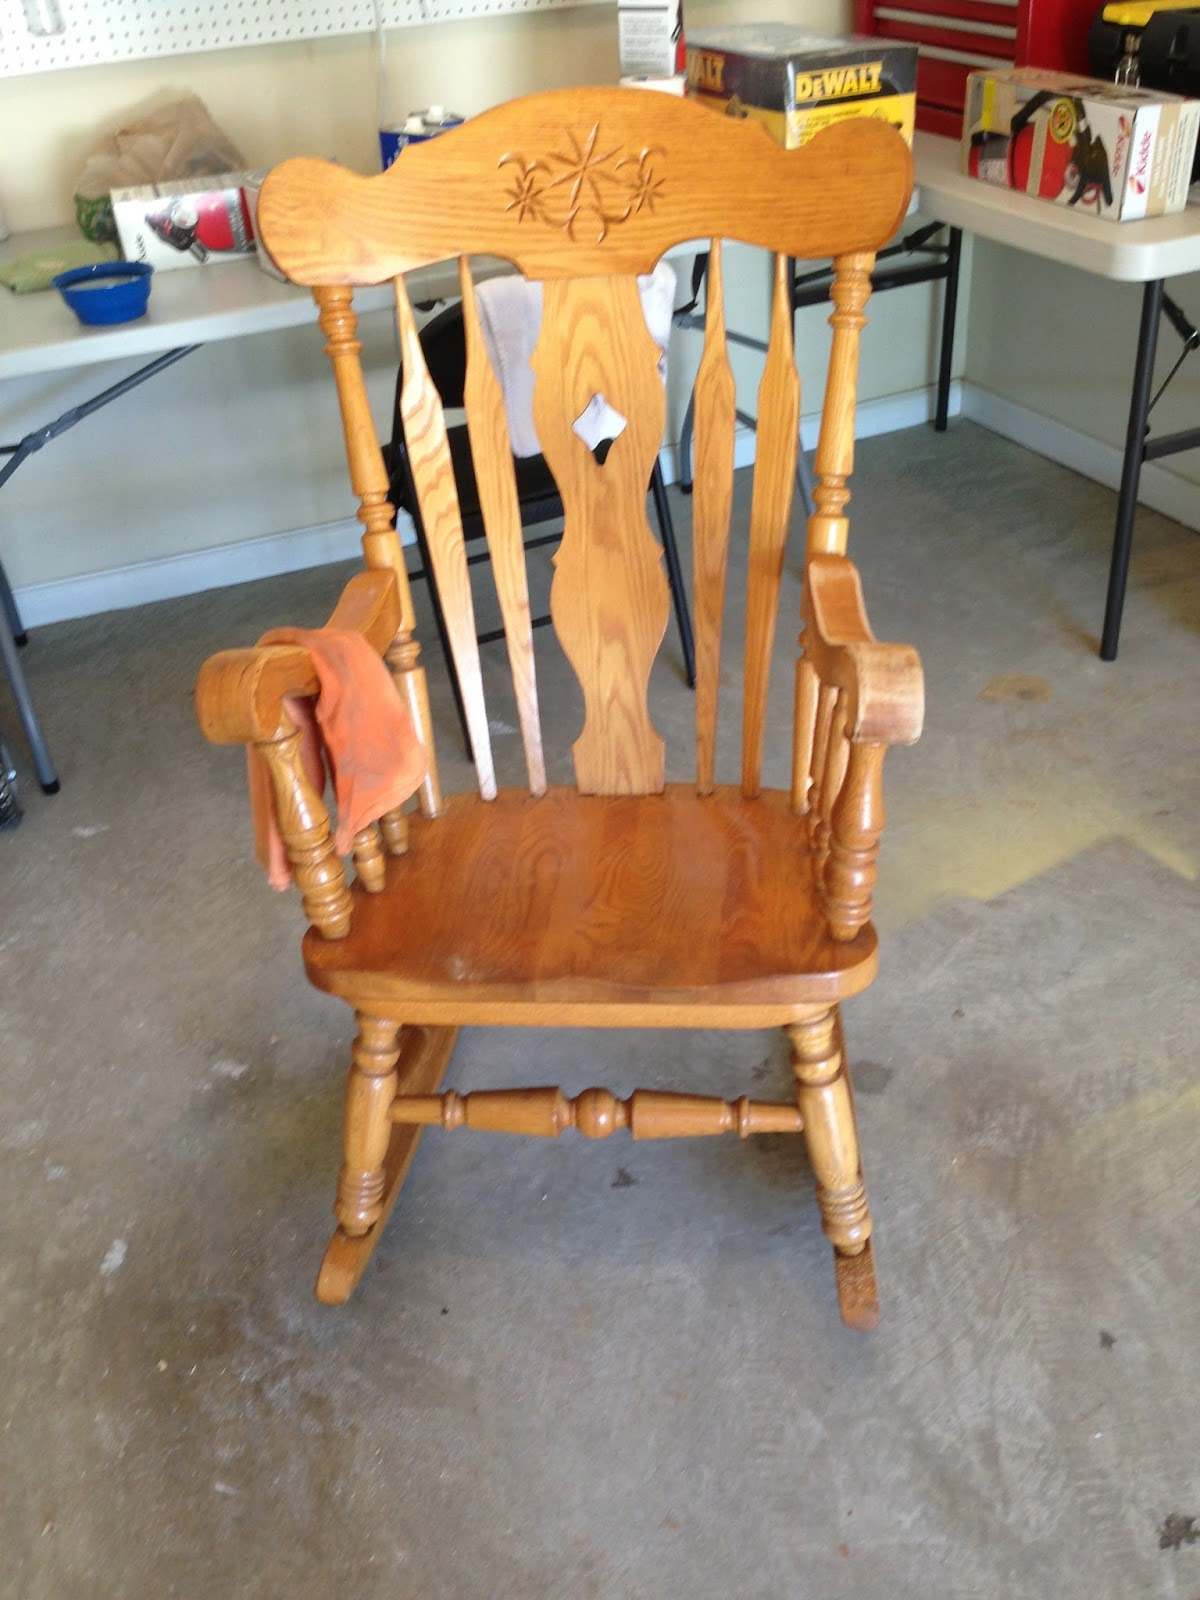 The Lovely Prelude Recipe For Cleaning Up An Old Rocking Chair